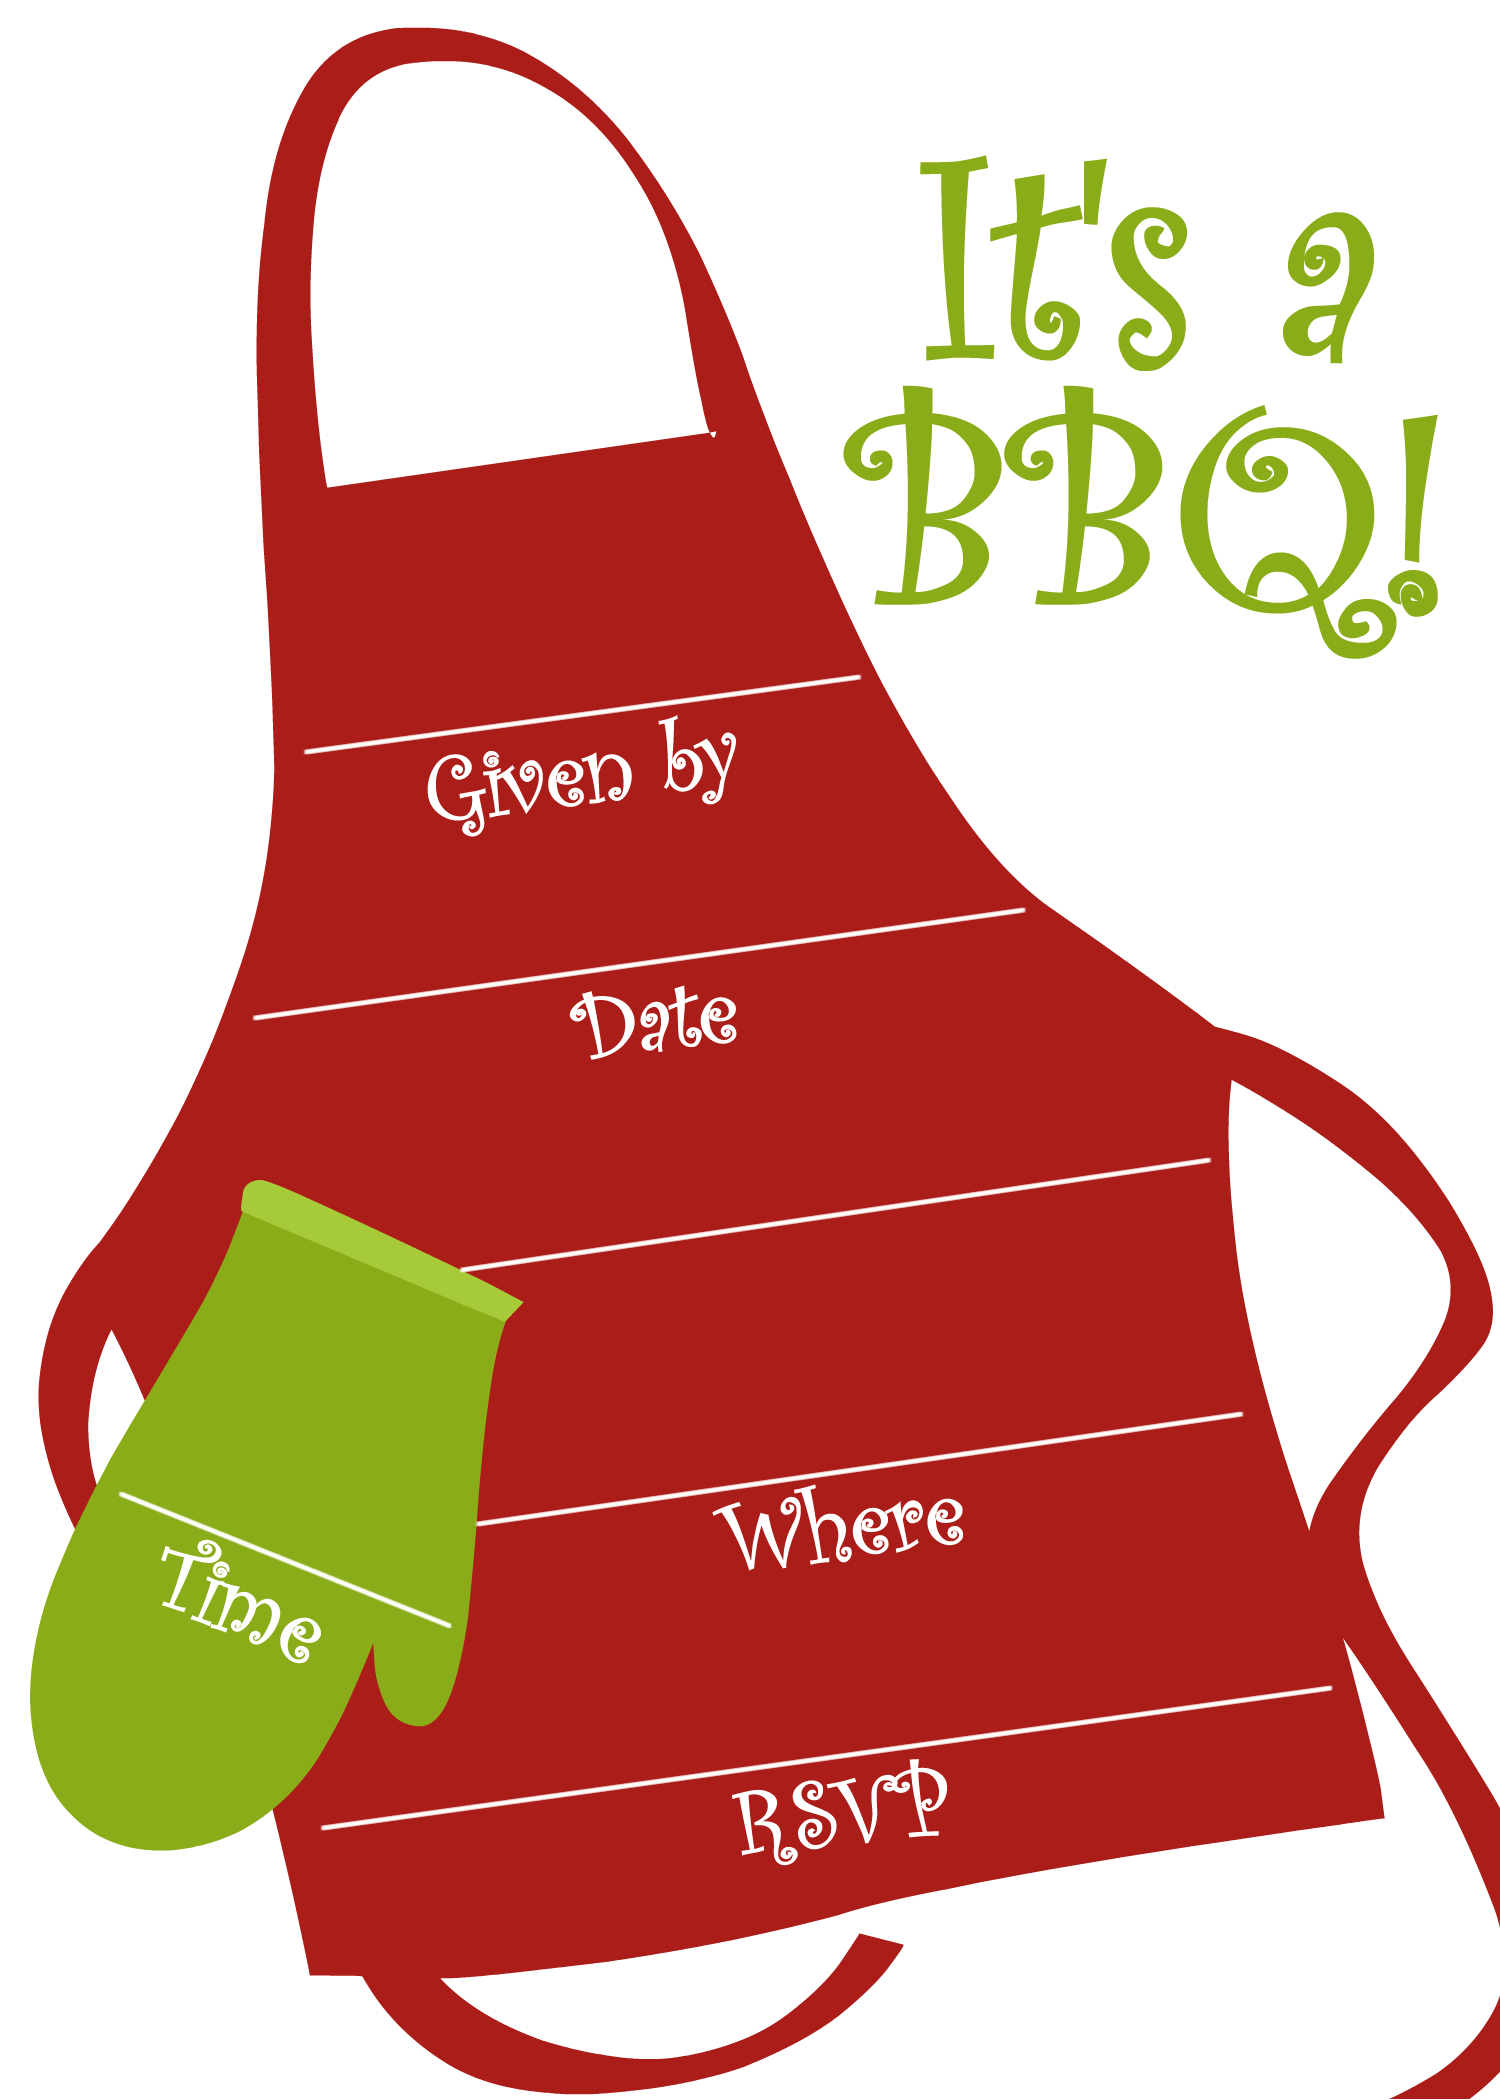 bbq party invitation templates free clipart panda free clipart images. Black Bedroom Furniture Sets. Home Design Ideas